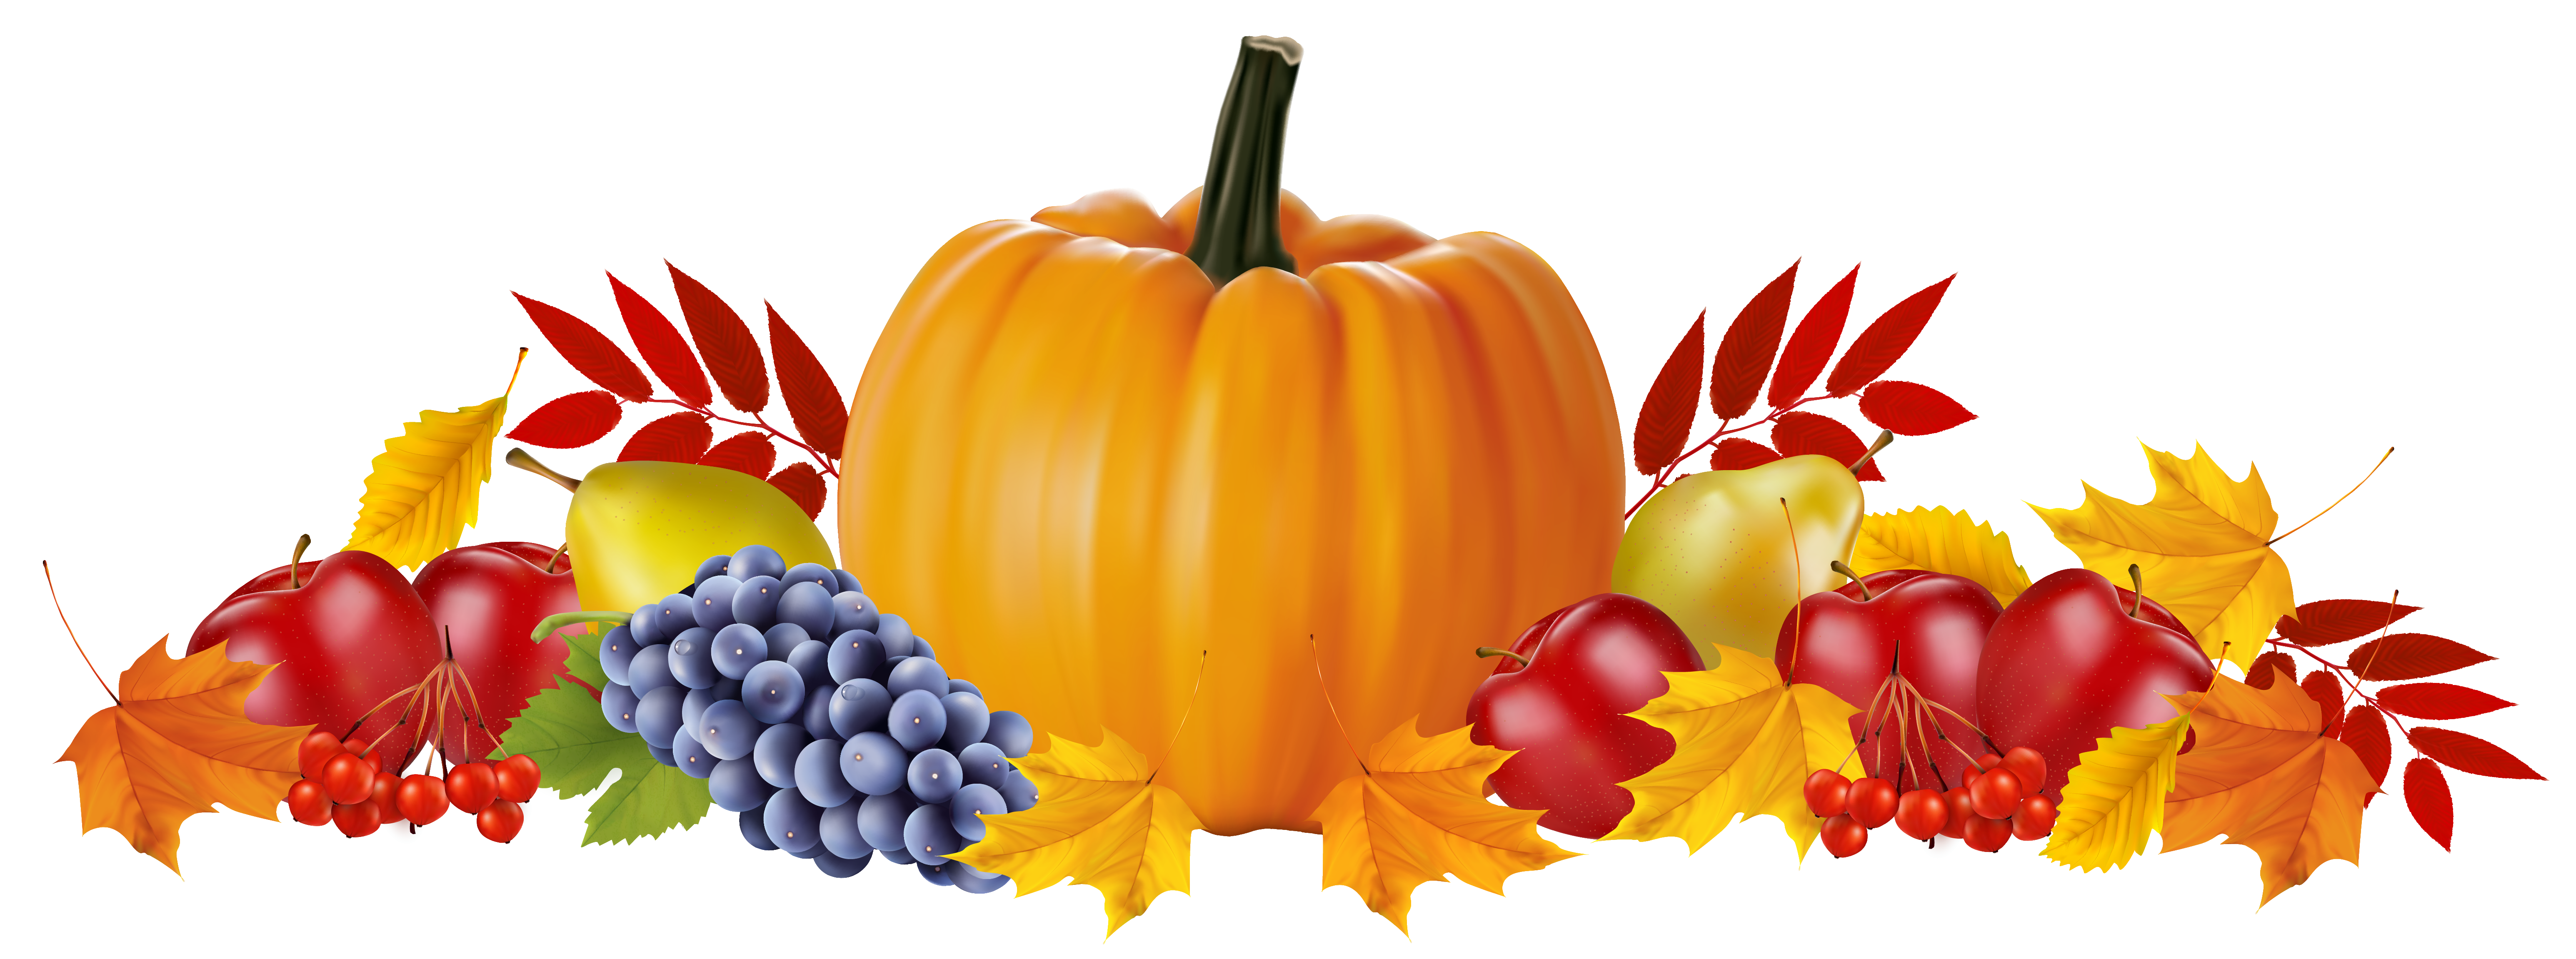 Autumn fruits and leaves. Clipart fruit summer fruit